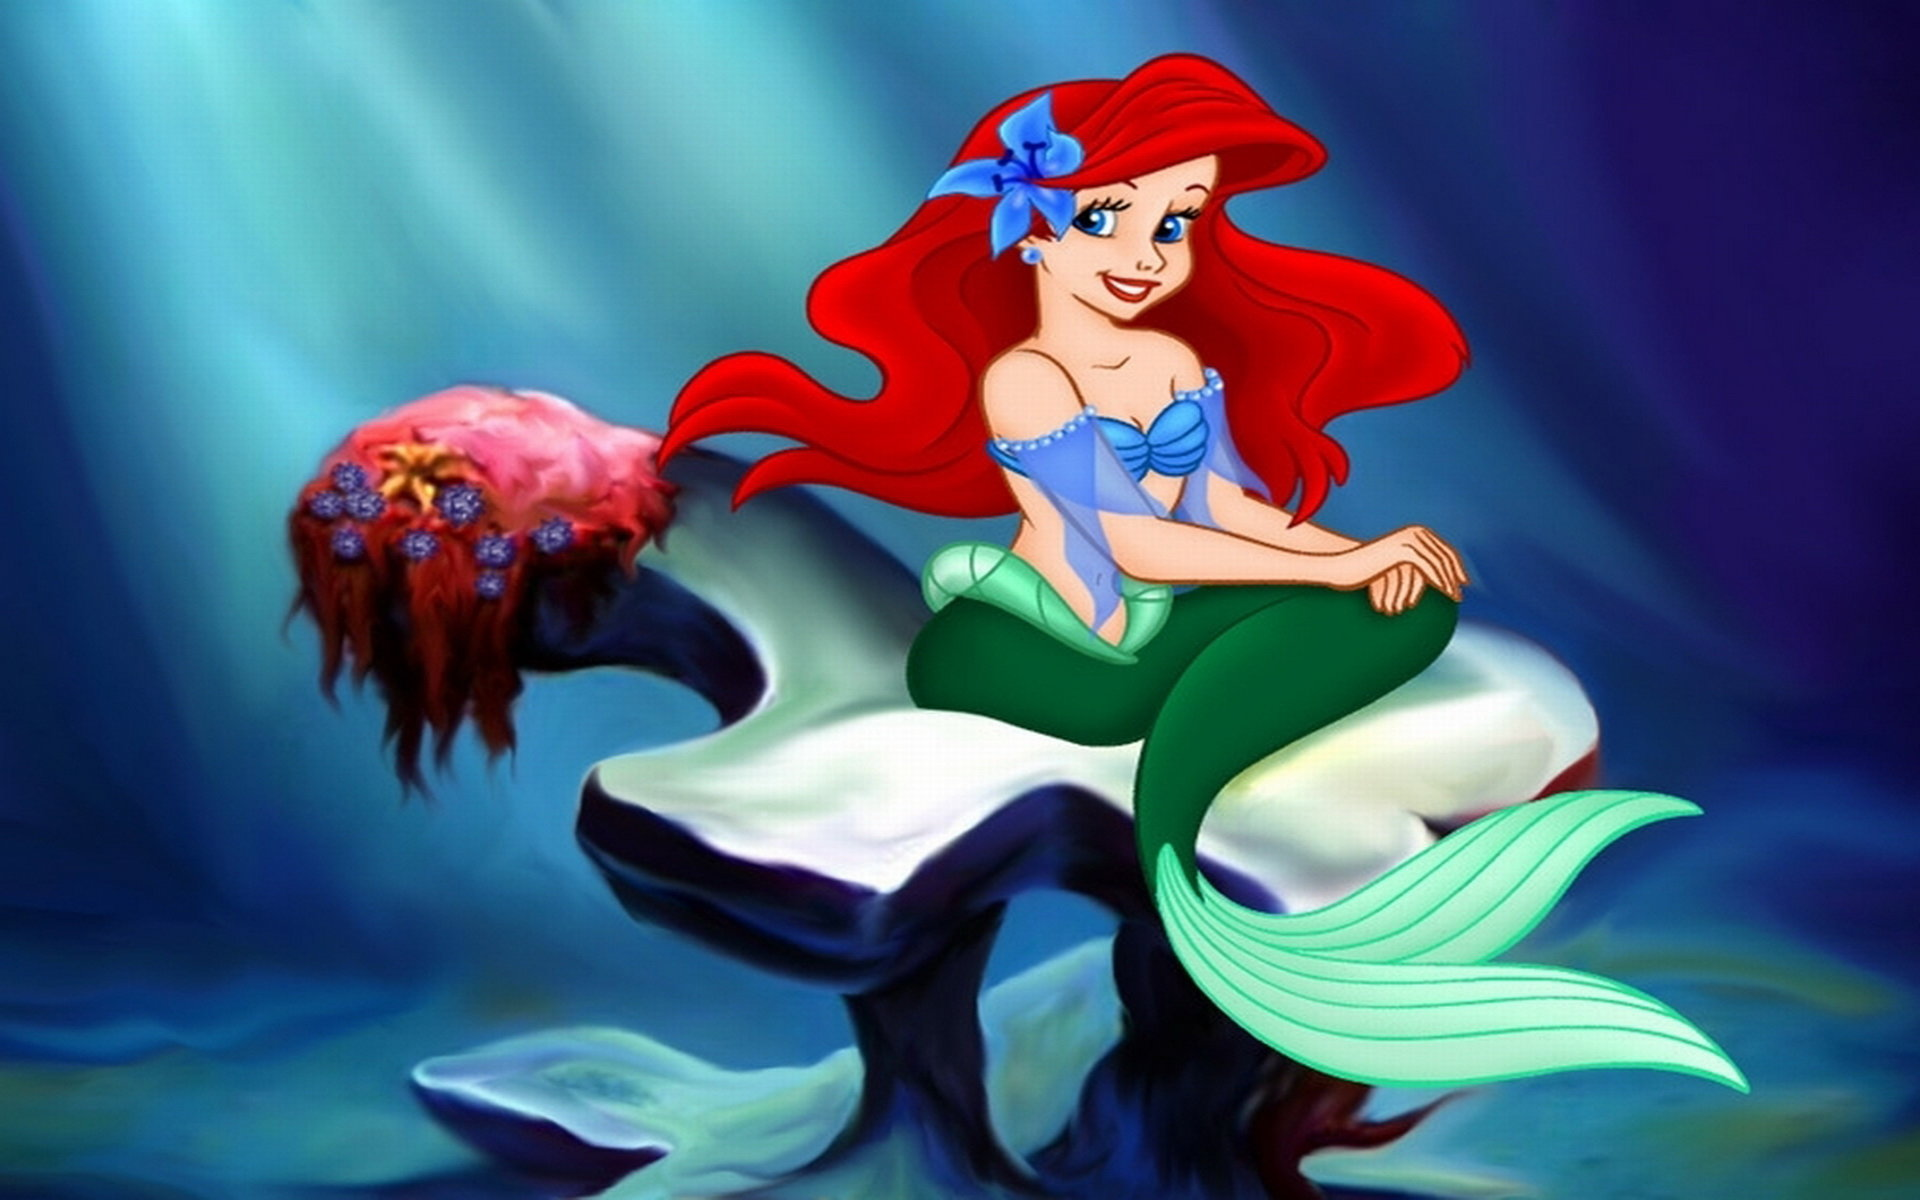 Awesome Little Mermaid Free Wallpaper Id 321501 For Hd 1920x1200 Computer